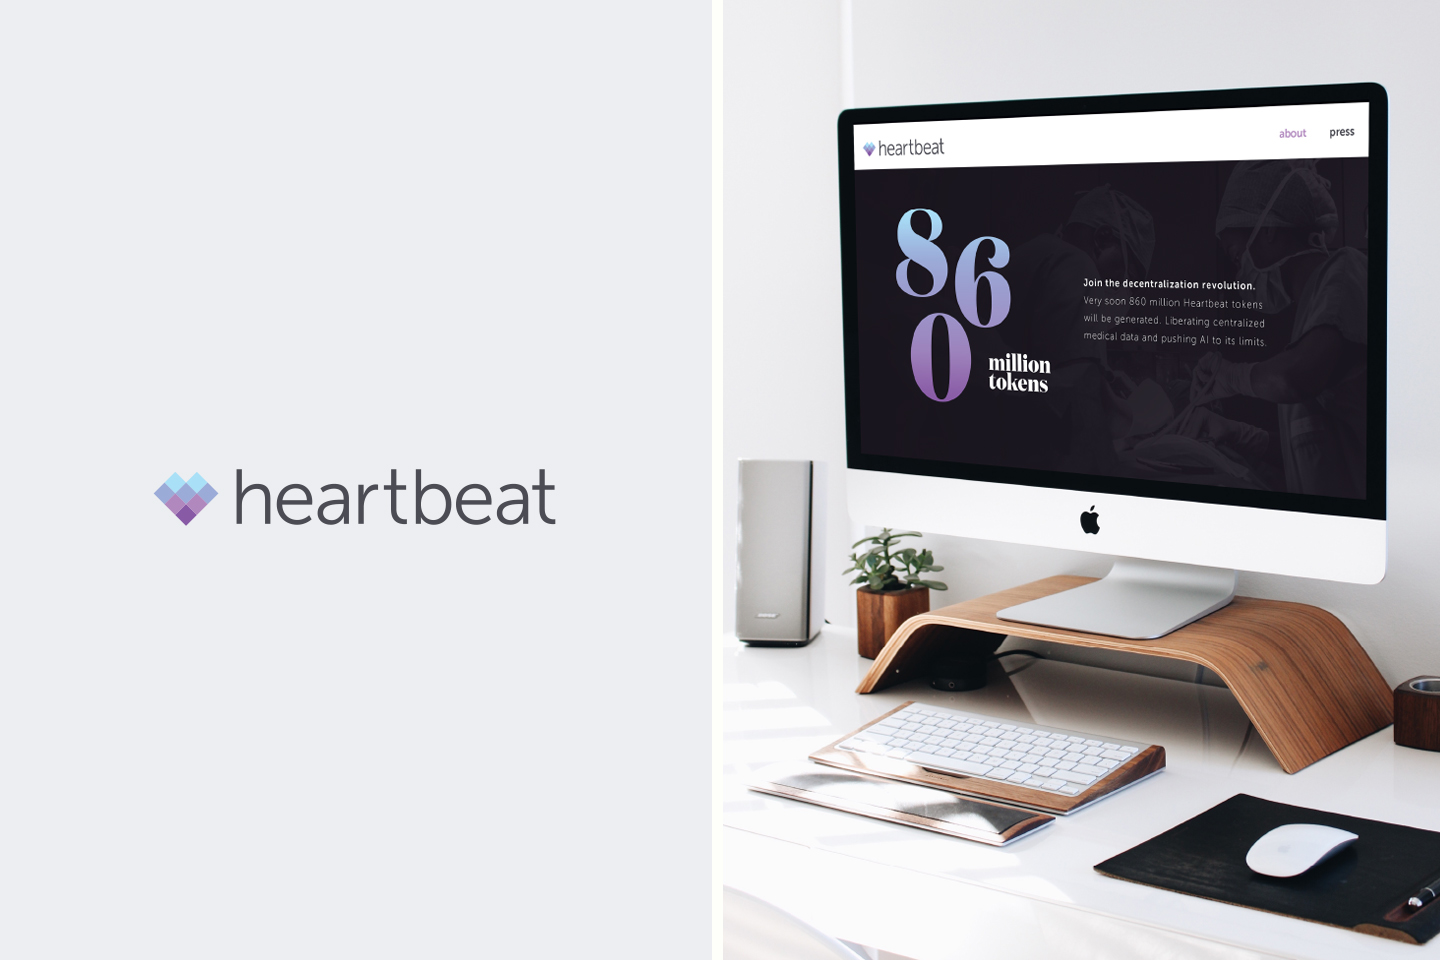 Heartbeat logo and website